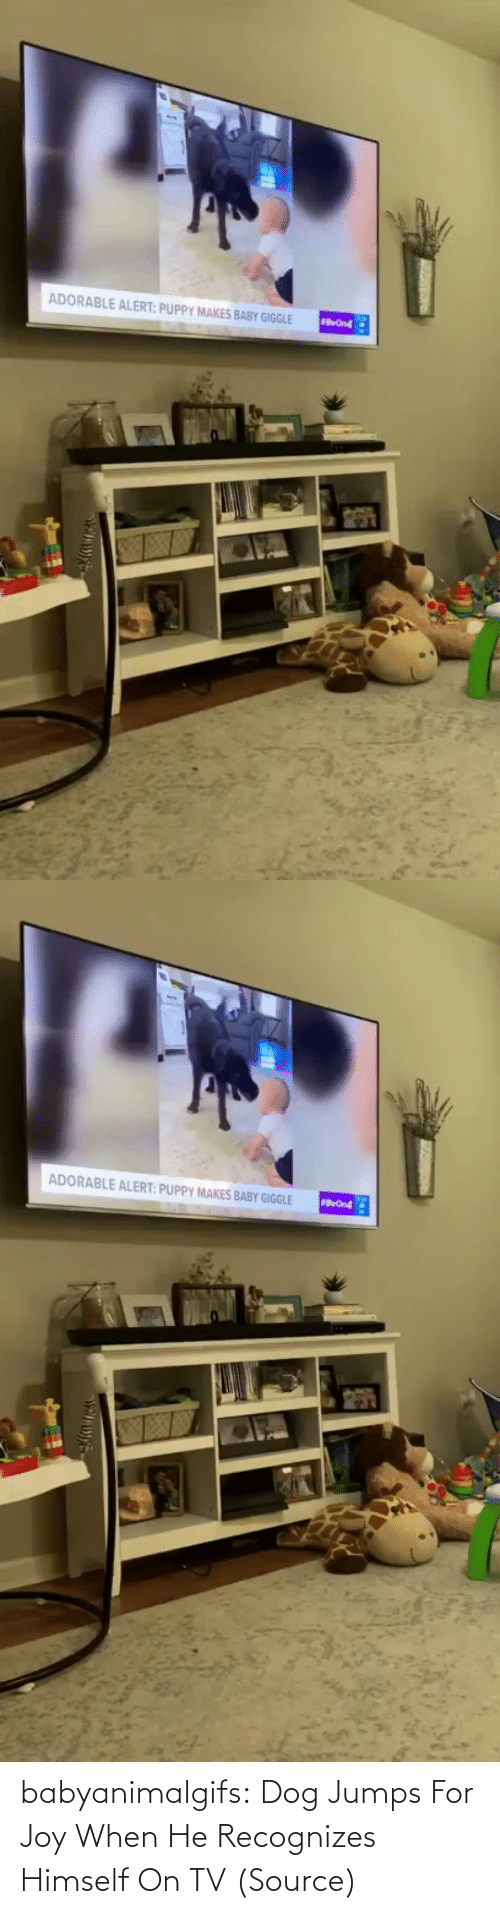 Dog: babyanimalgifs:  Dog Jumps For Joy When He Recognizes Himself On TV (Source)